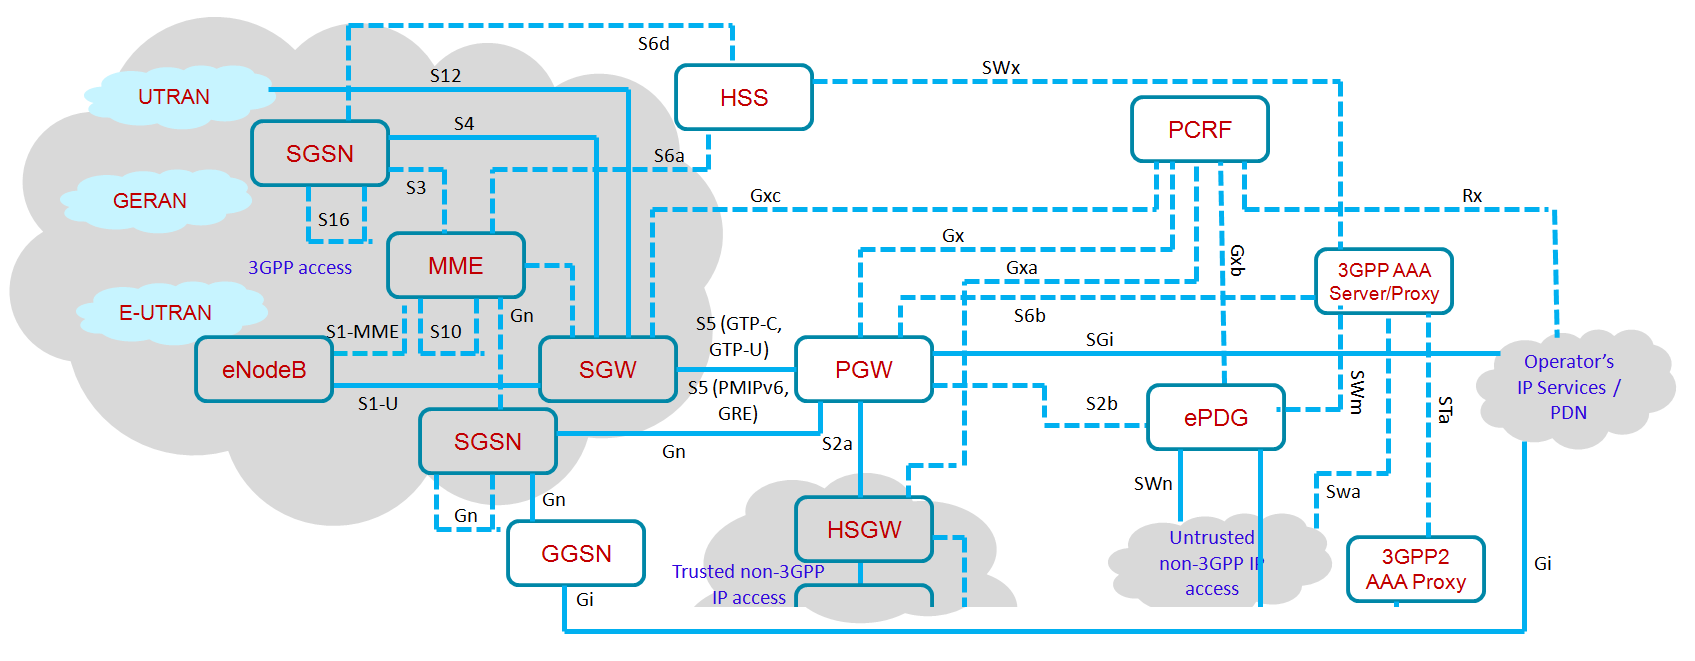 org (White paper on Gateways, backhaul, security) 7. 4G Americas http://www.4gamericas.org (Whitepapers) 8. ETSI Studies on latency requirements for M2M applications http://docbox.etsi.